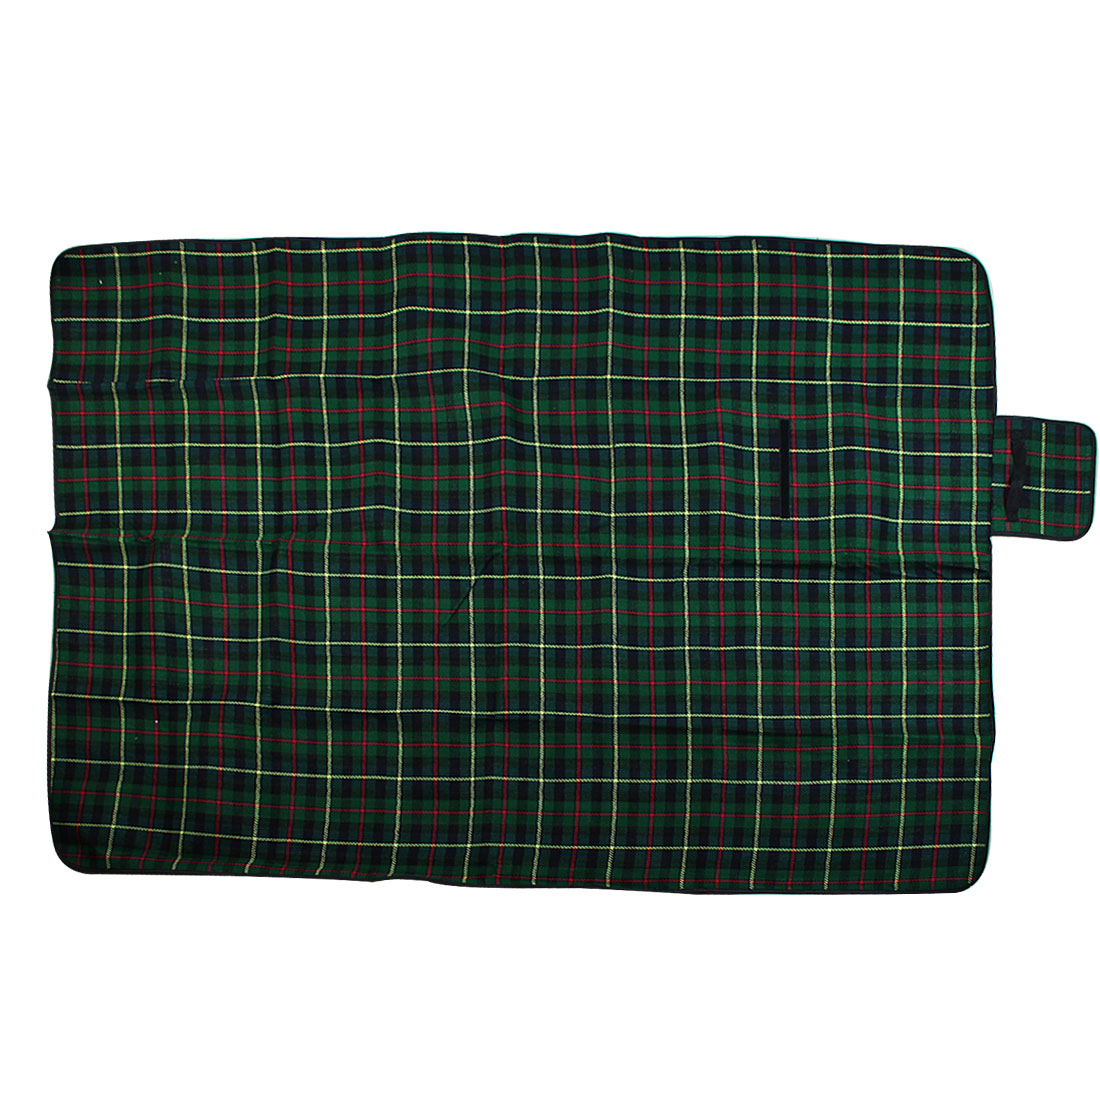 Portable Cashmere Plaid Pattern Waterproof Camping Picnic Mat Matress 200cm x150cm Green